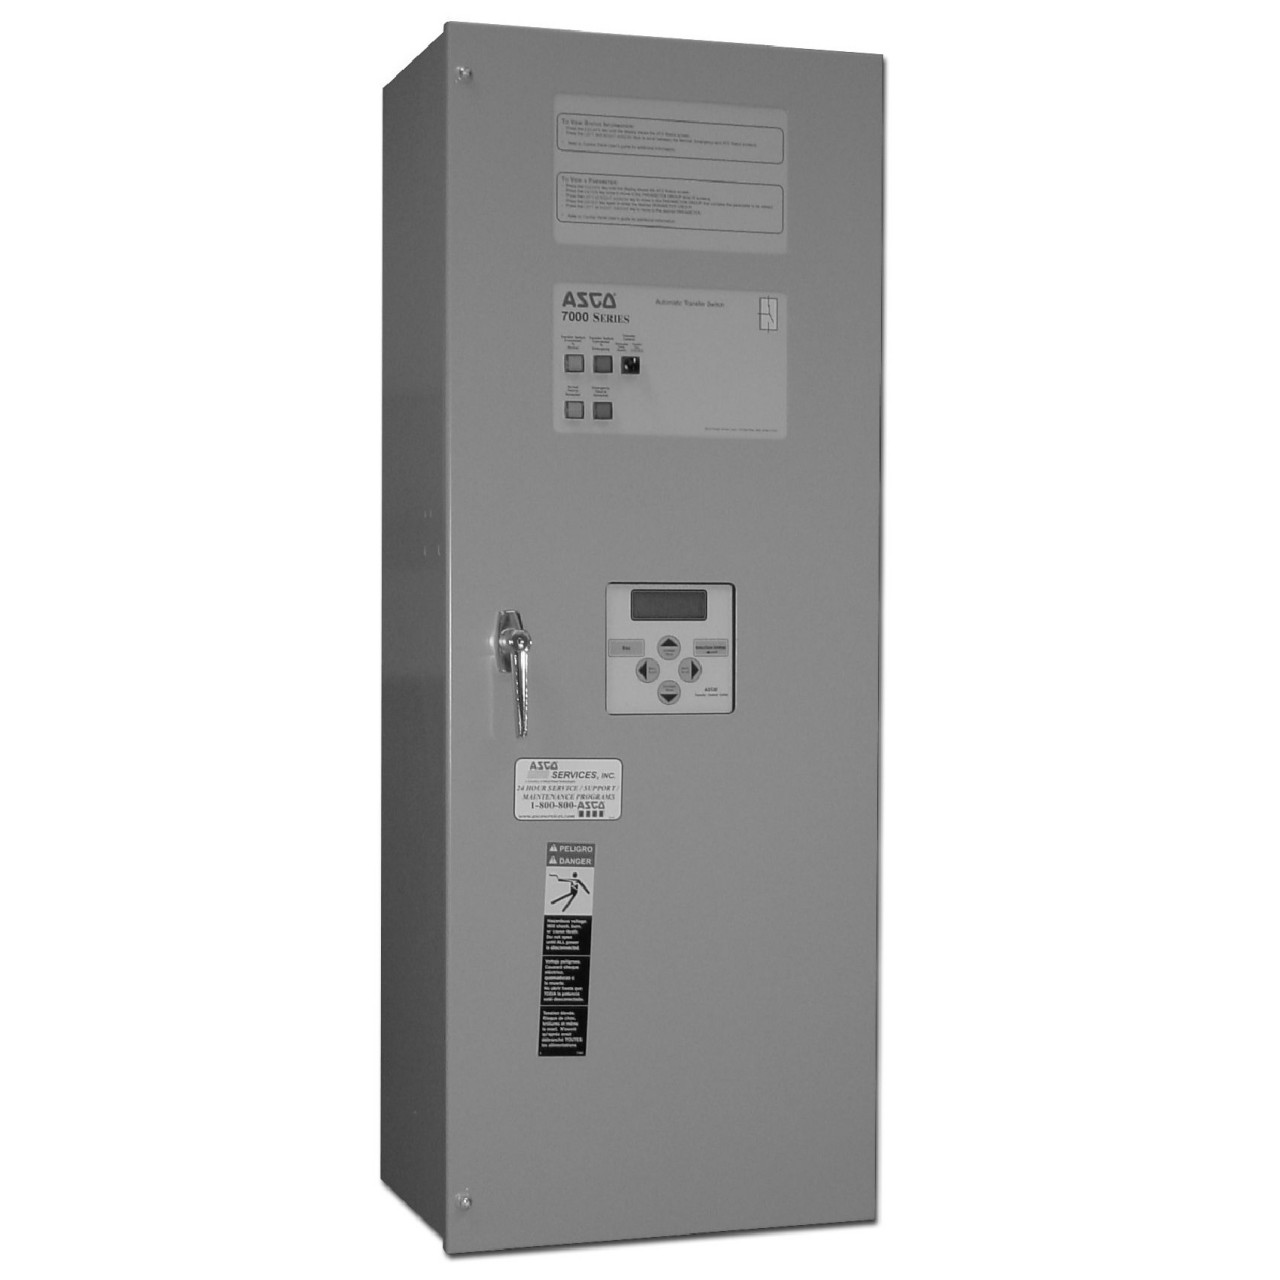 Asco 7000 Auto Transfer Switch (3Ph, 70A)